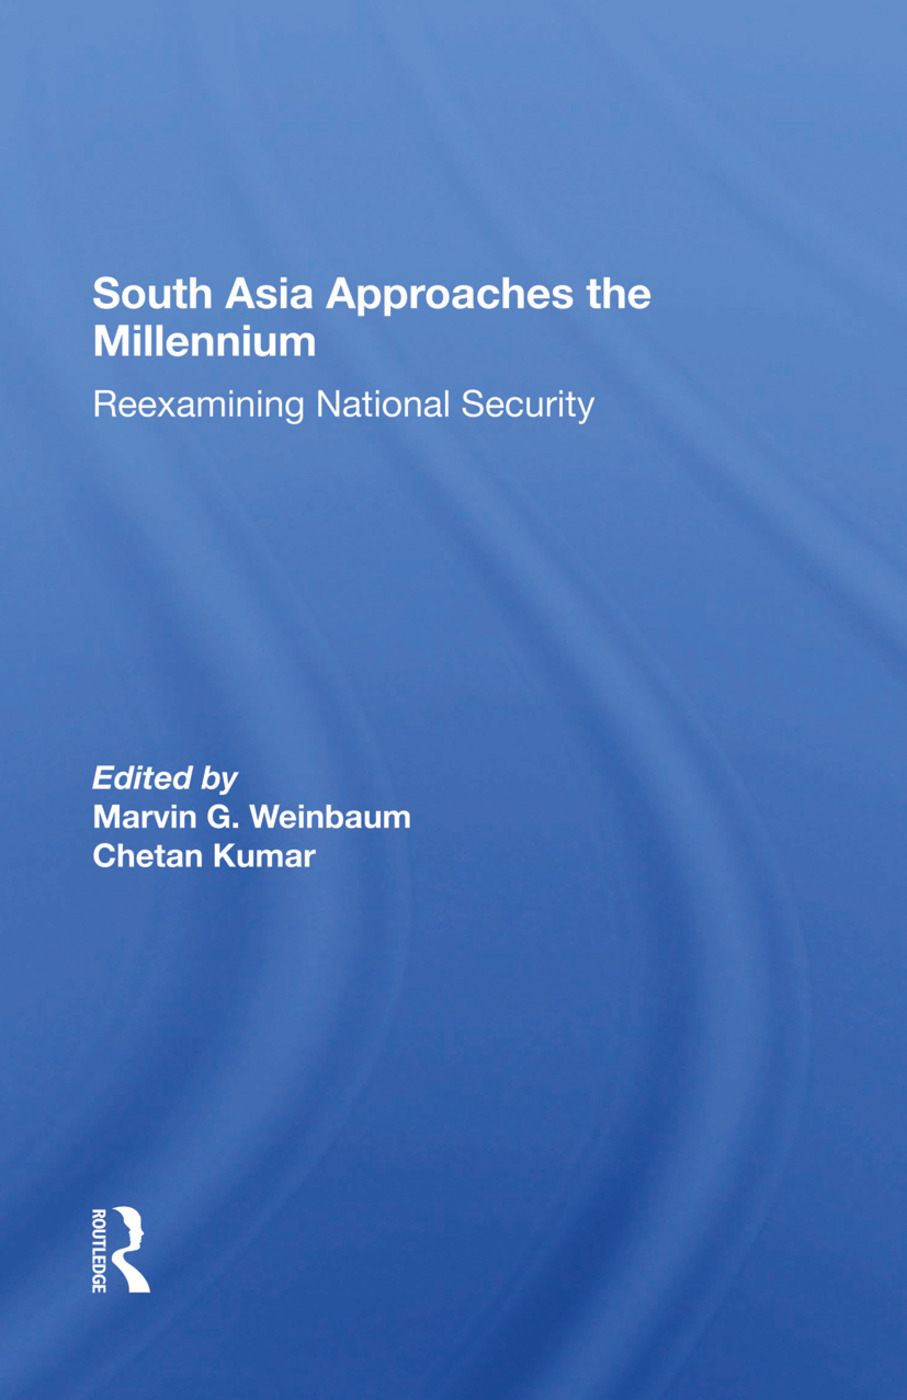 South Asia Approaches The Millennium: Reexamining National Security, 1st Edition (Hardback) book cover